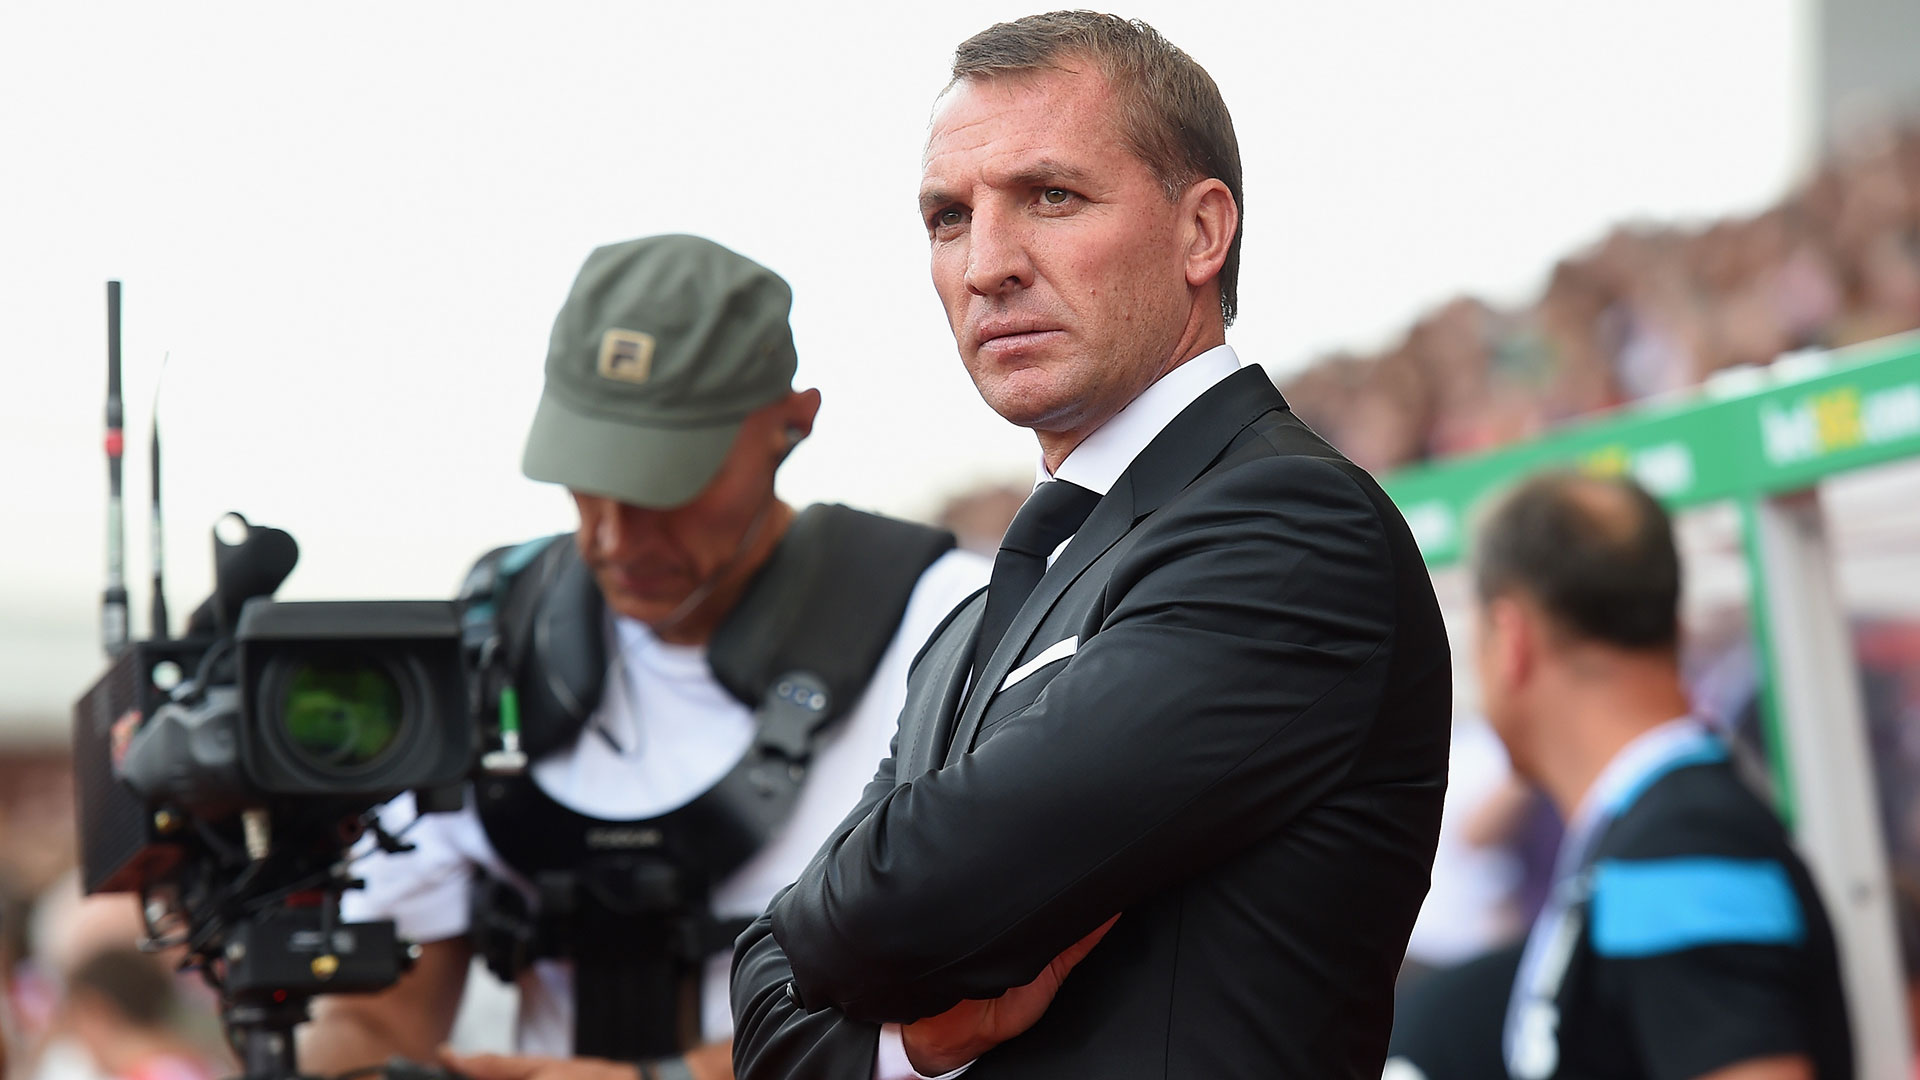 Brendan Rodgers Stoke City Liverpool Premier League 09082015